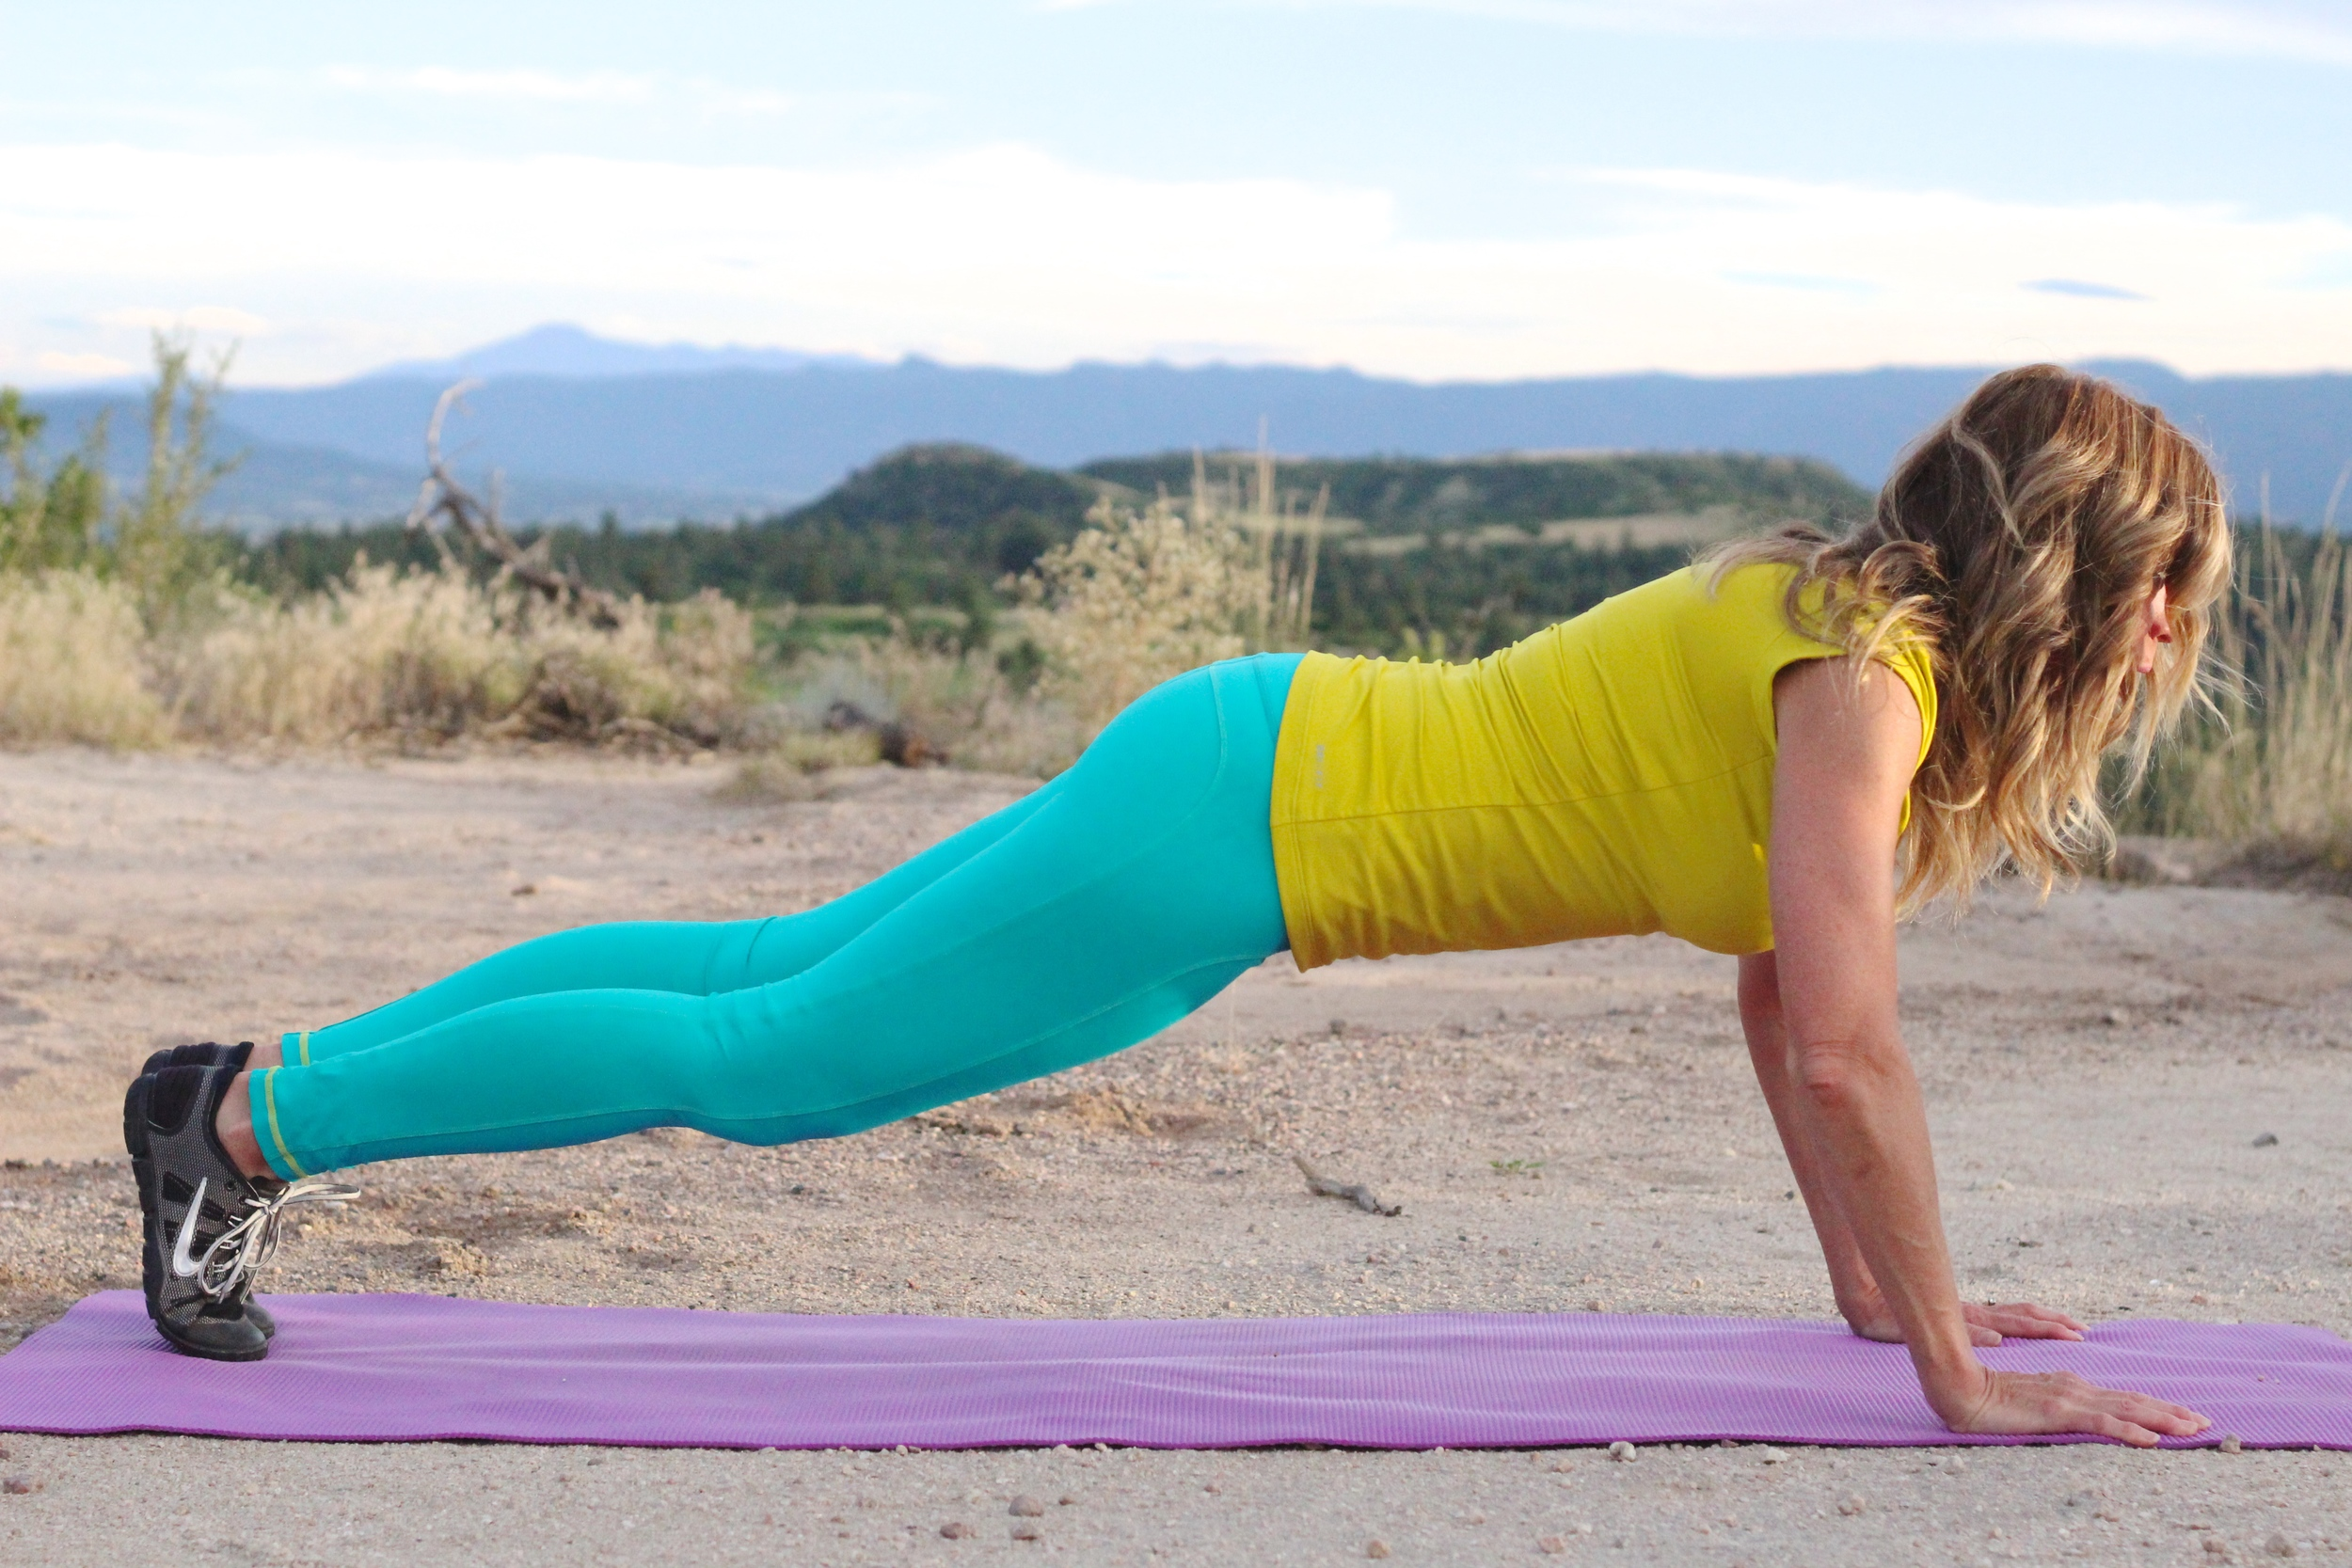 In Plank position getting ready to do Mountain Climbers, to strengthen the abs.